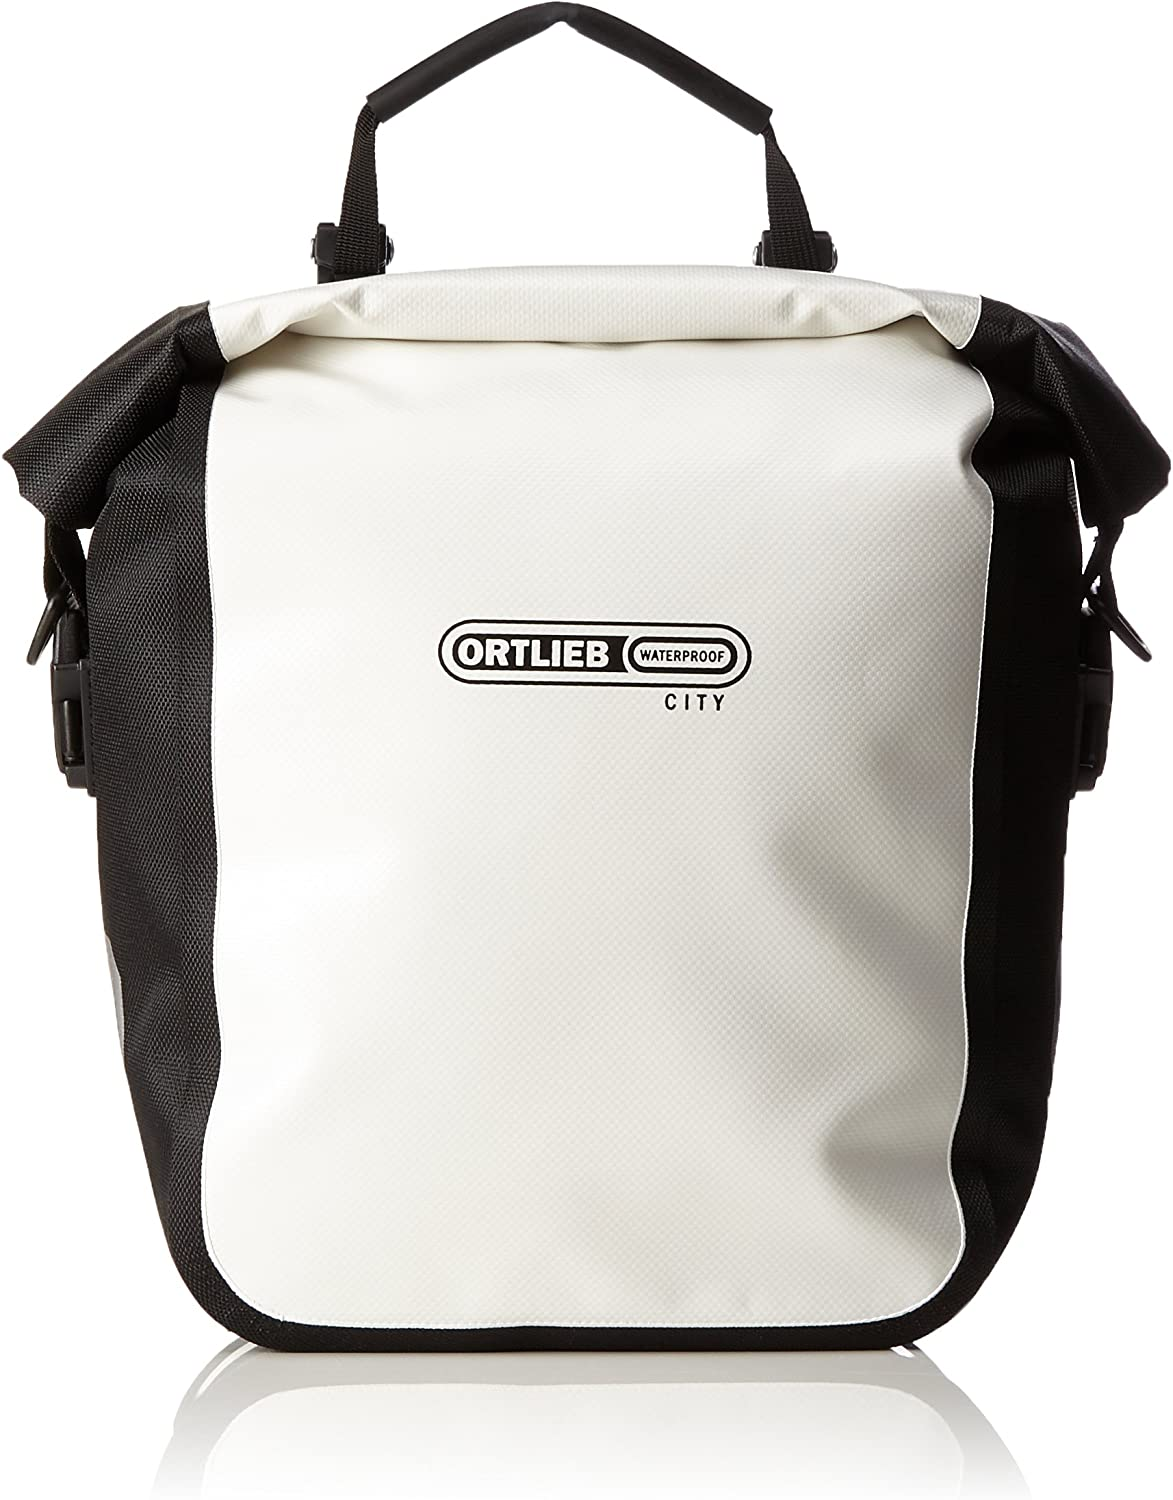 Ortlieb Sport Roller City White Saddle bags 2016